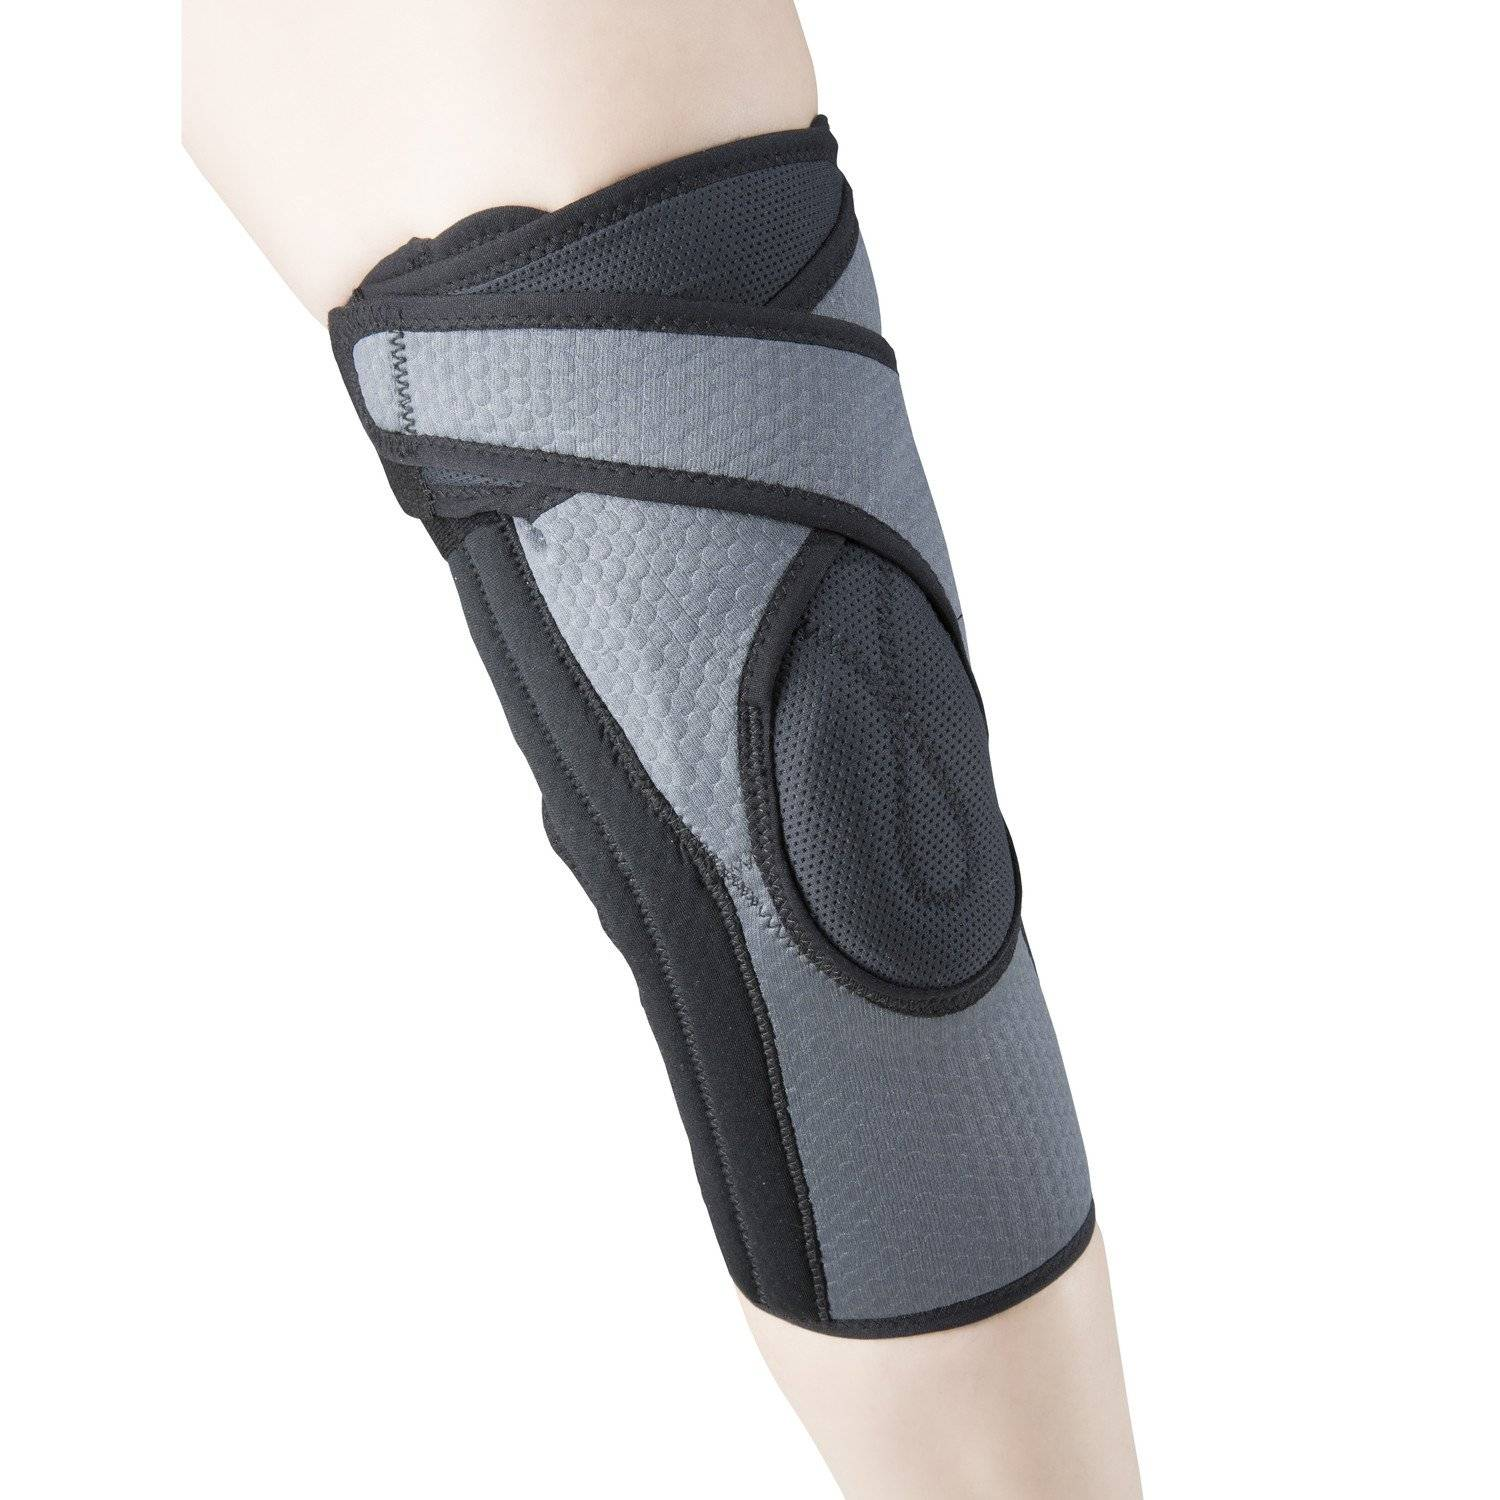 2550 / AIRMESH KNEE SUPPORT WITH PATELLA UPLIFT